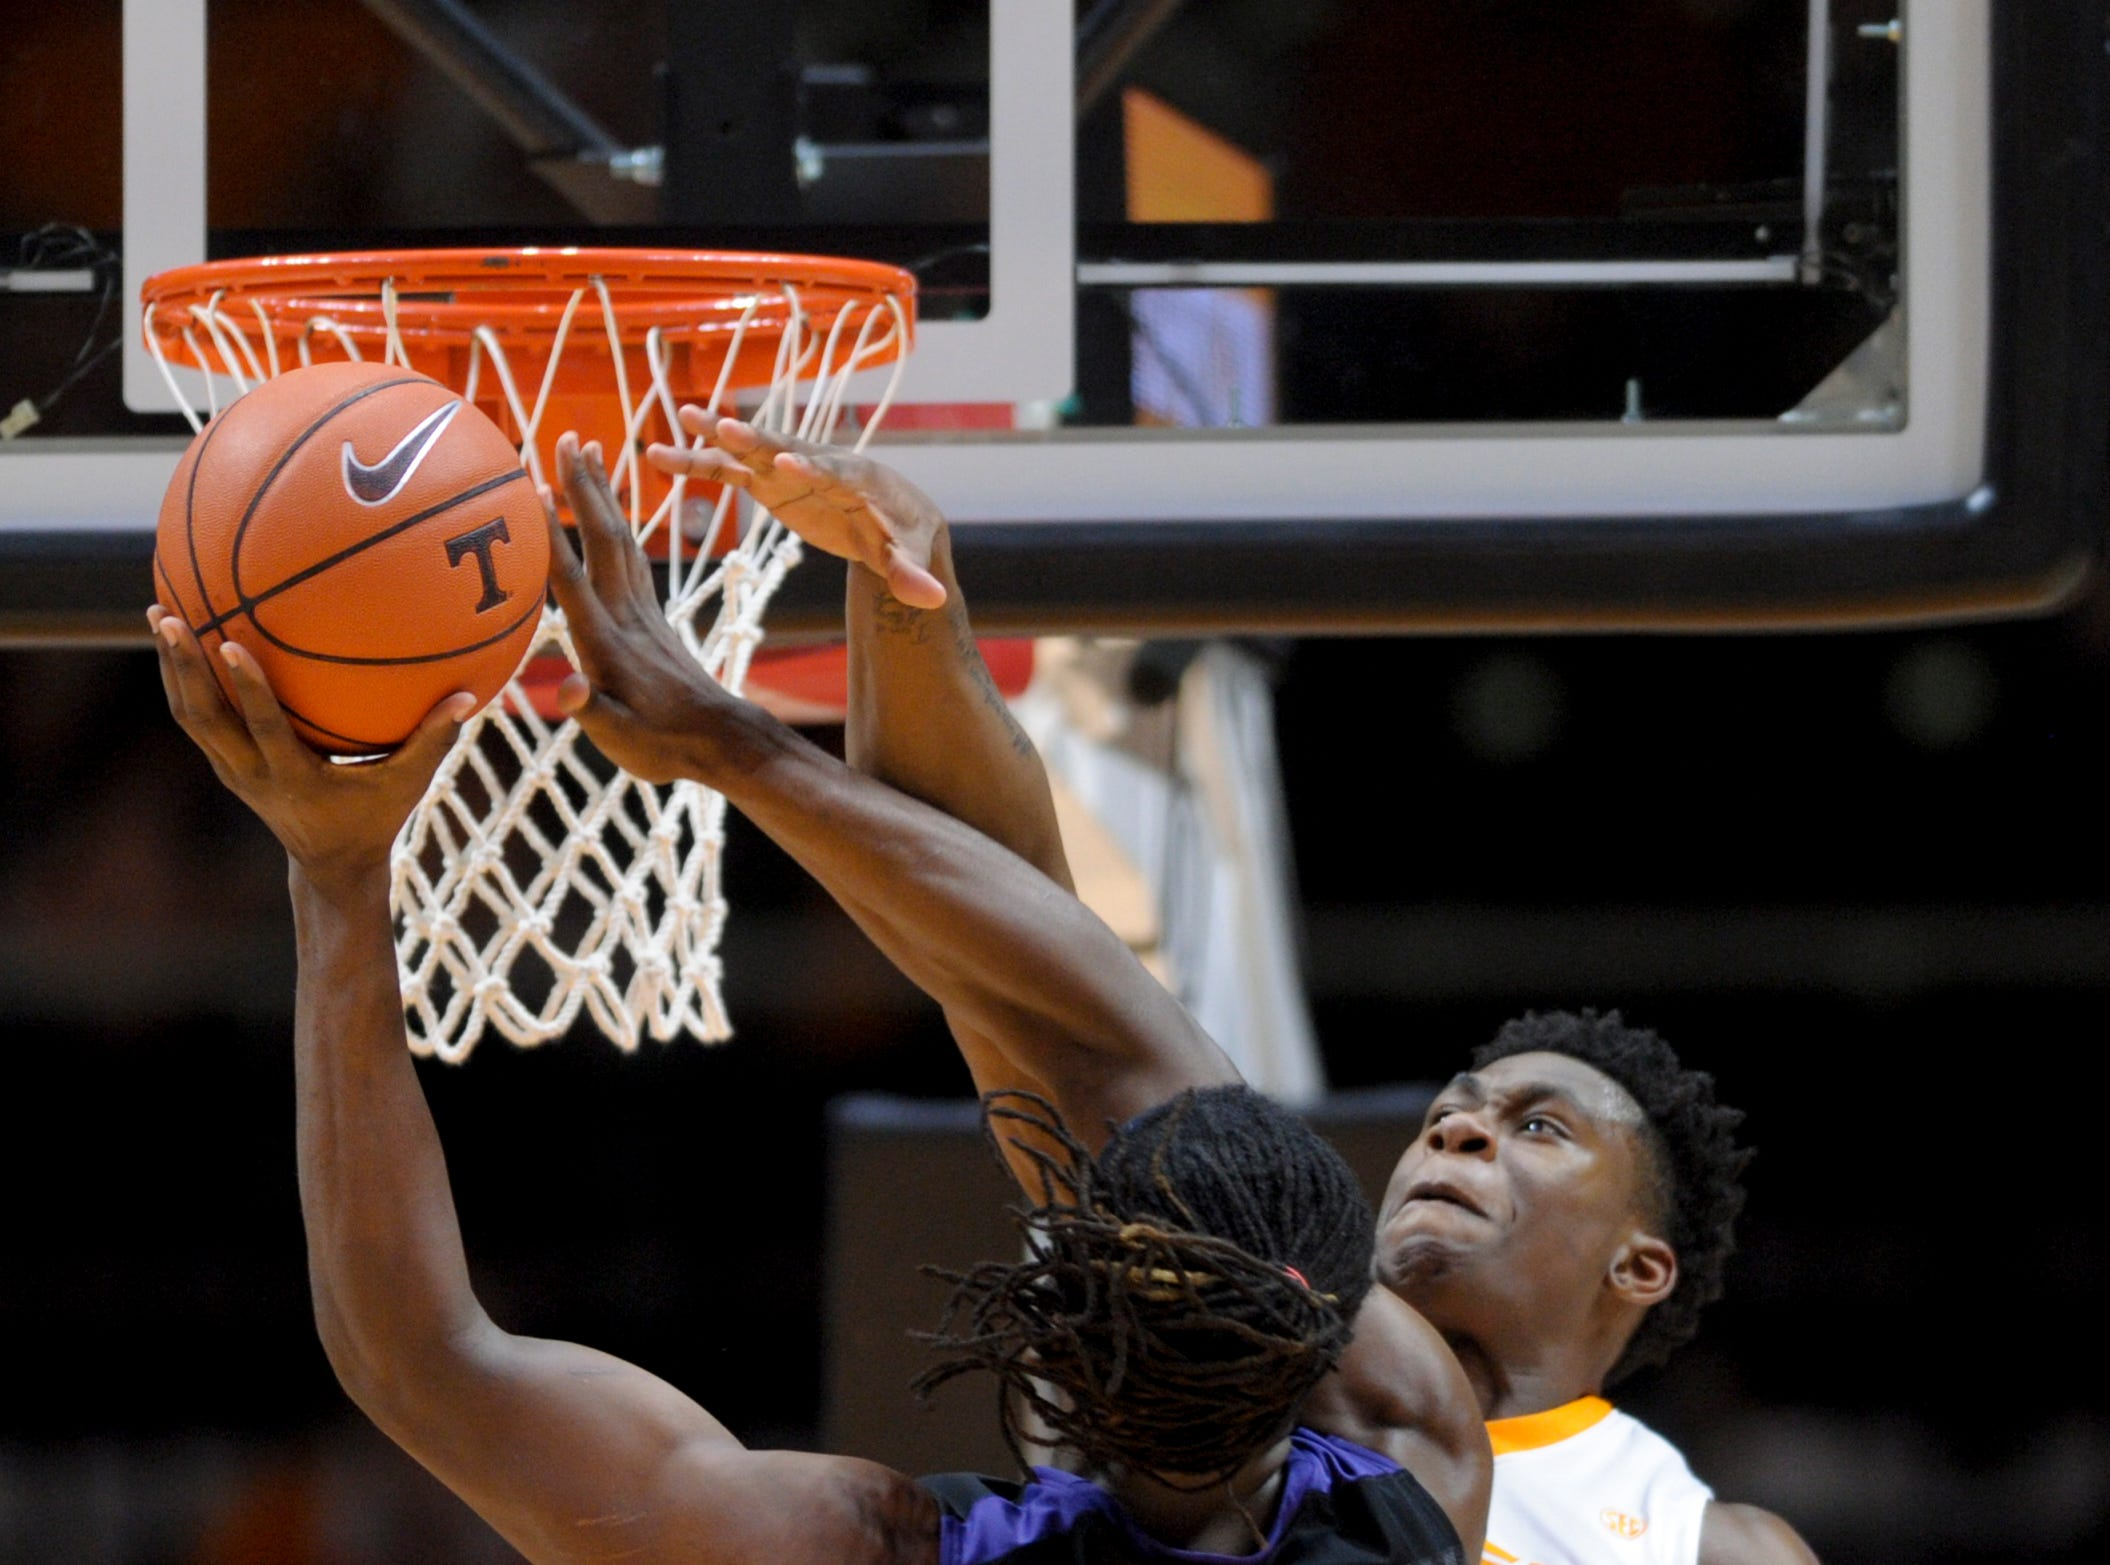 Tennessee‰Ûªs Admiral Schofield (5) blocks a shot by Kansas State‰Ûªs D.J. Johnson (4) during an NCAA SEC-Big 12 basketball game between Tennessee and Kansas State at Thompson-Boling Arena in Knoxville, Tennessee on Saturday, January 28, 2017.